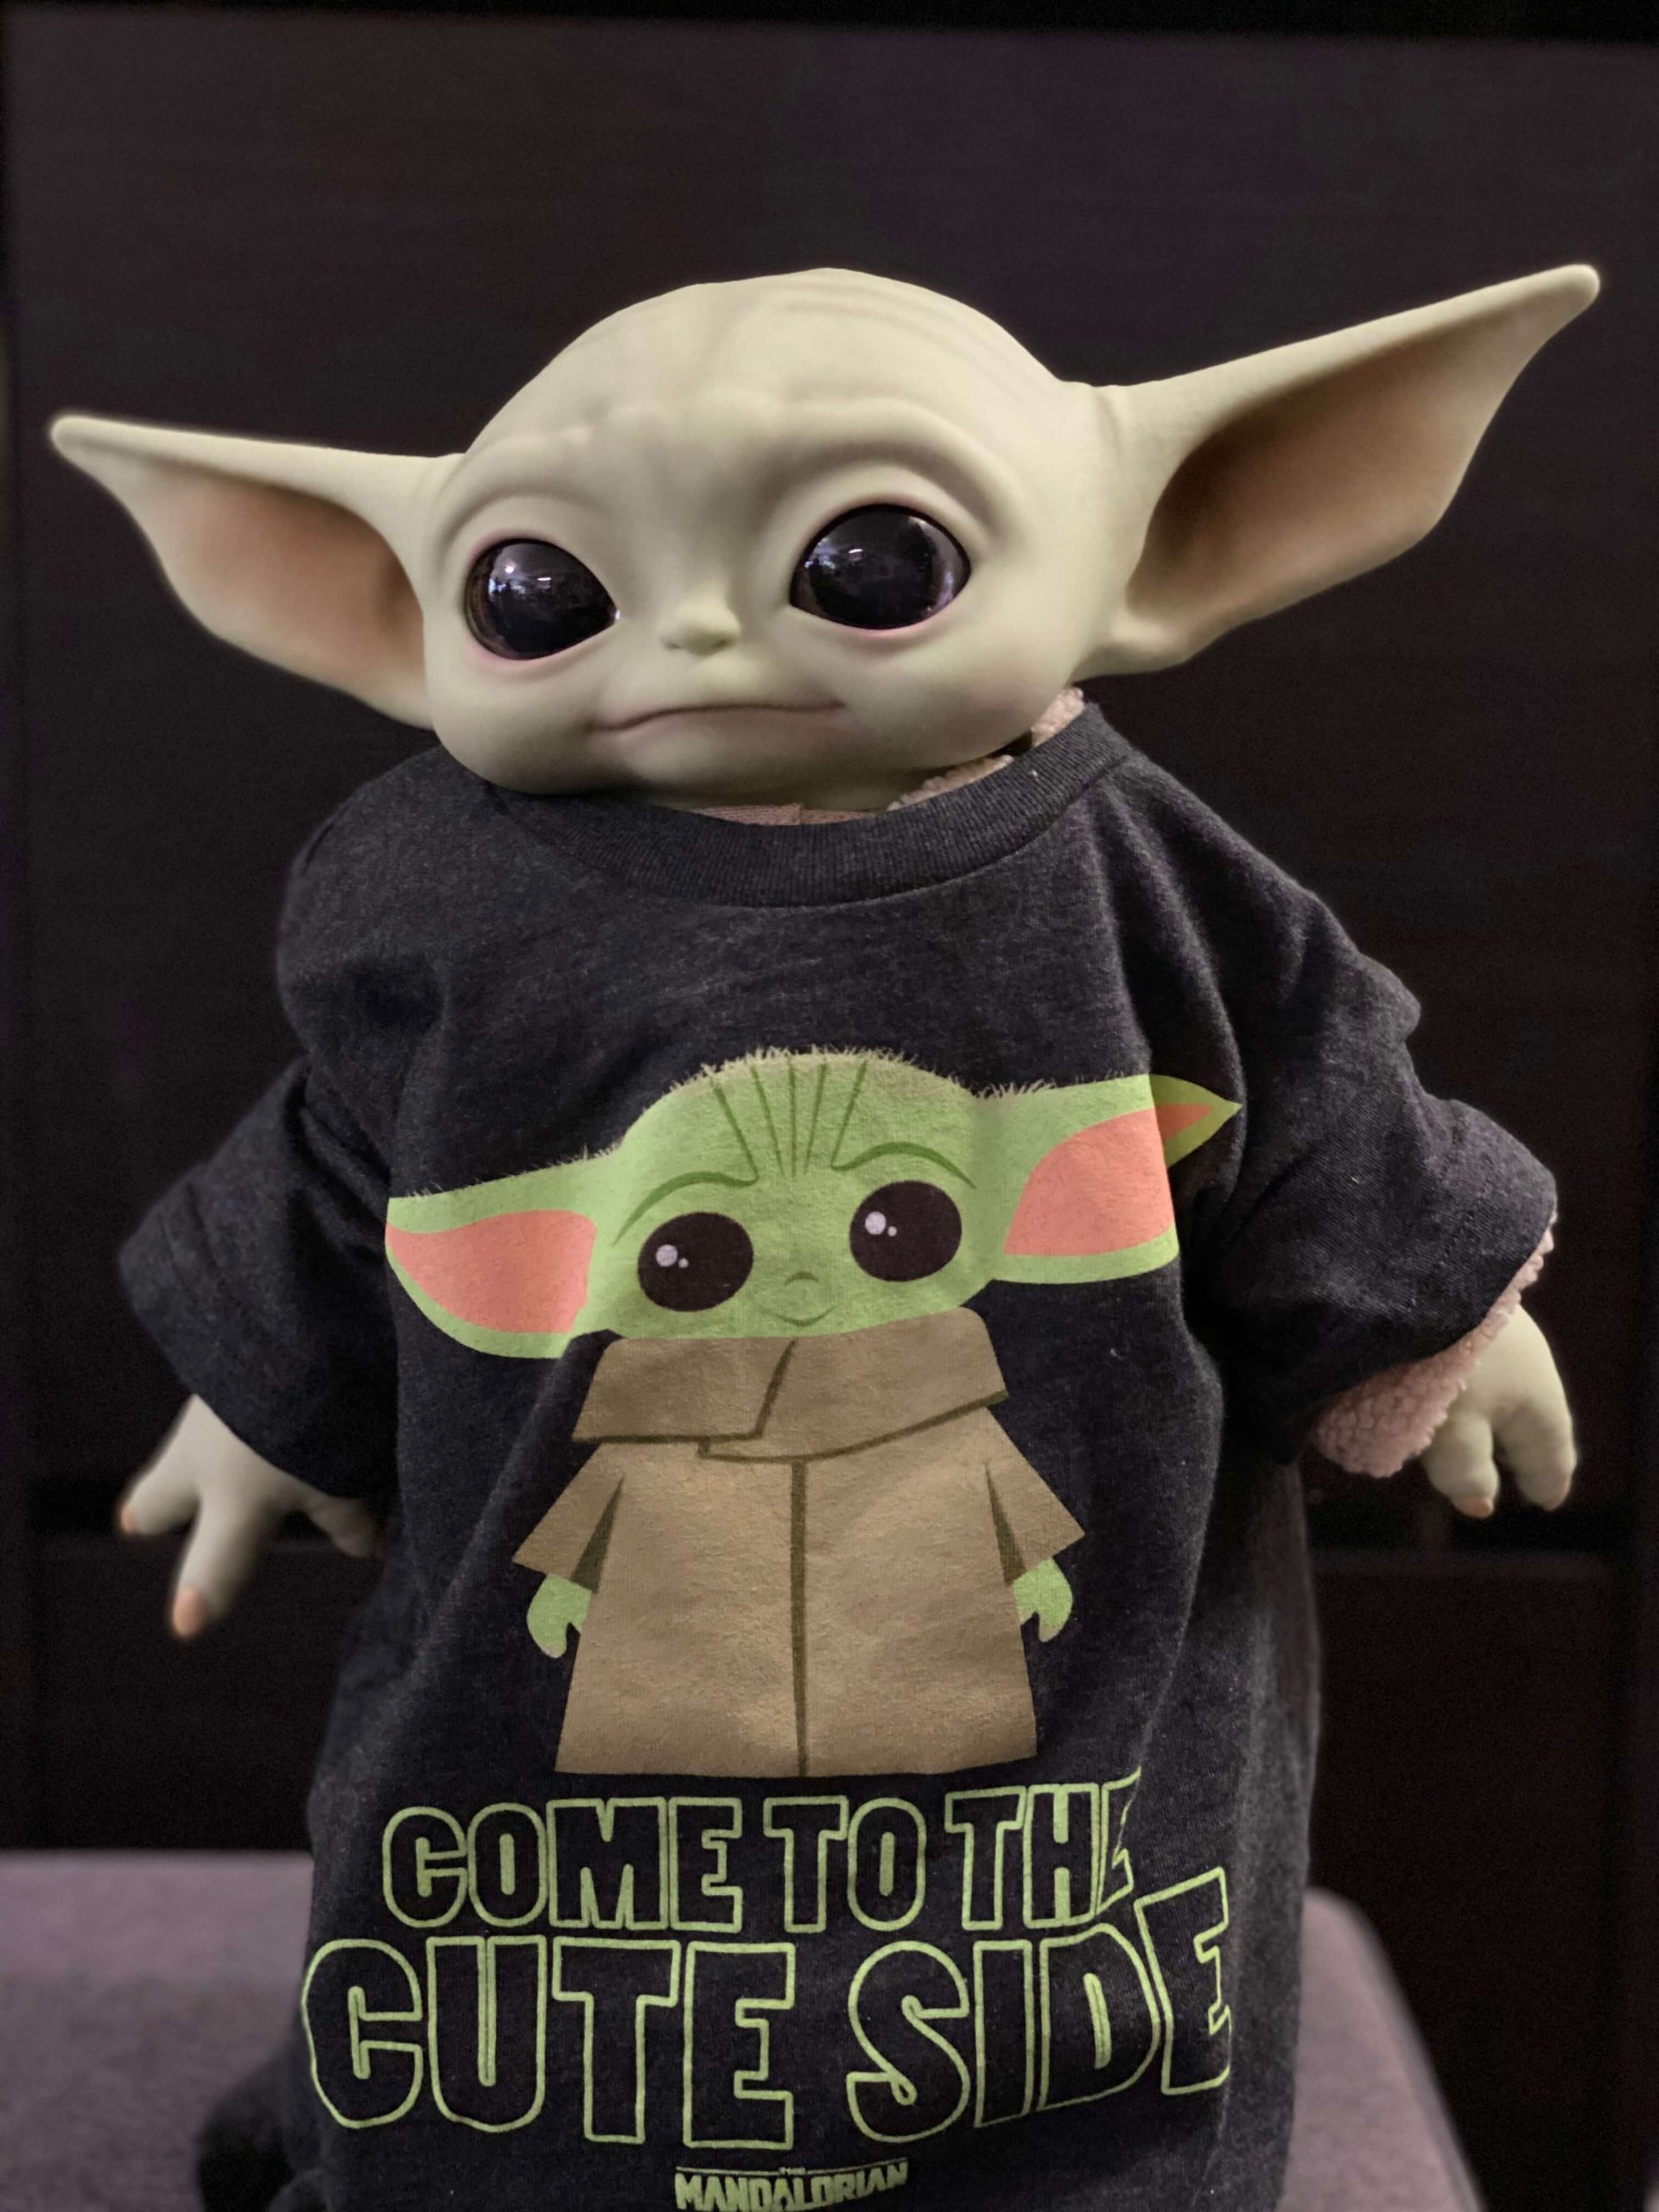 "The Child is a Baby Yoda Fan Too! Star Wars: The Mandalorian The Child 11"" Plush With Vinyl Head by Mattel via Disney 